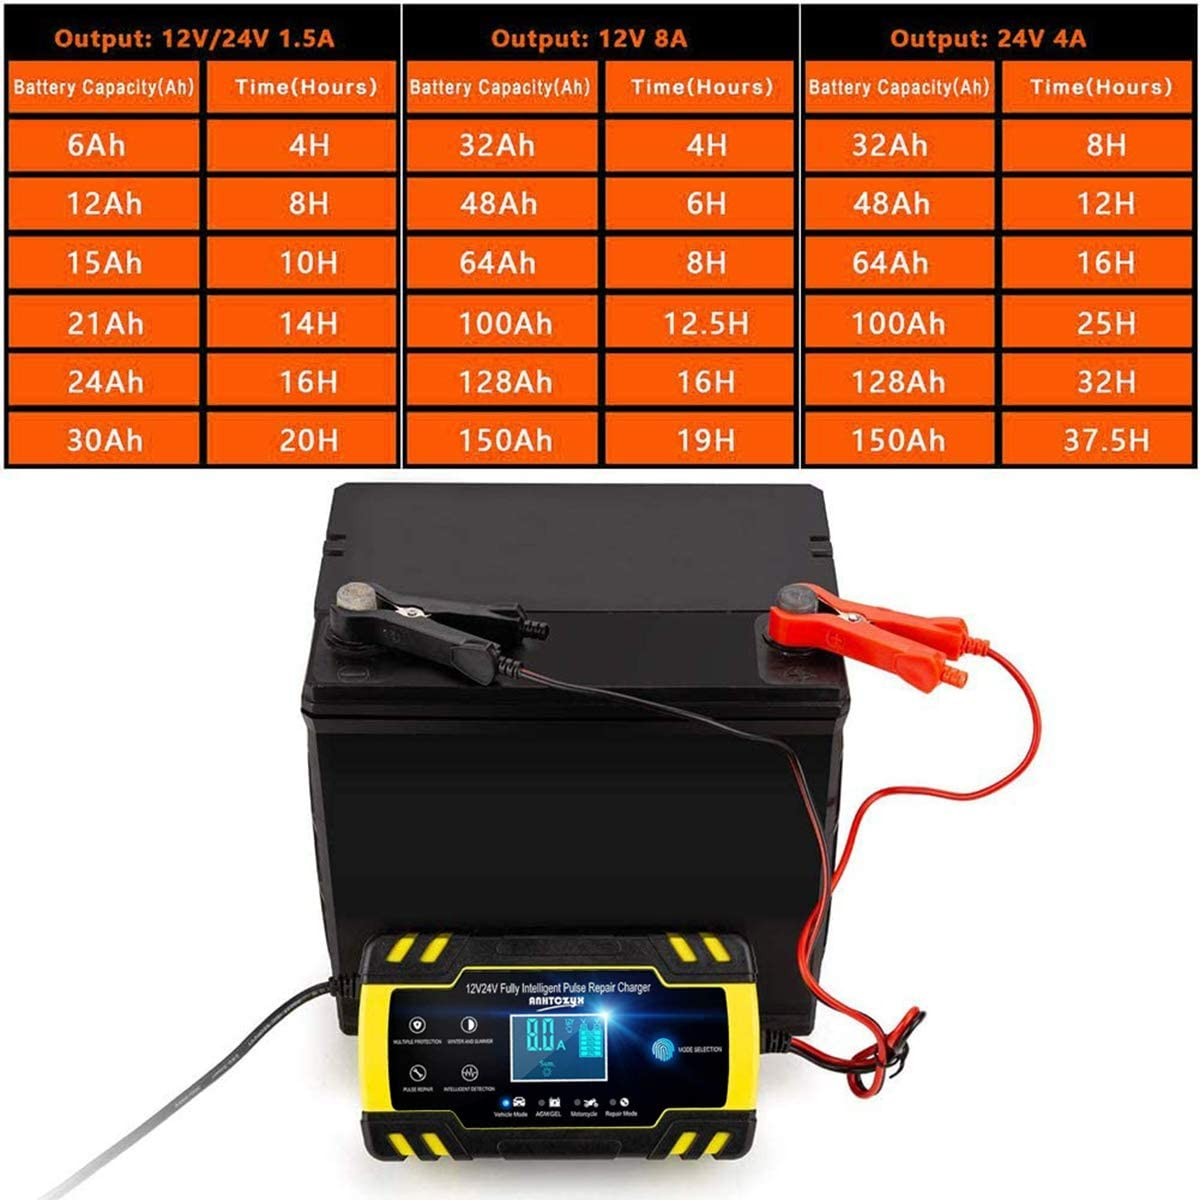 JXWL Car Battery Charger Motorcycle Boat Lawn Mower ATV and More 8 Amp 12V 24V 3-Stage Automatic Trickle Battery Charger Maintainer with LCD Screen UK Plug for Car RV SUV